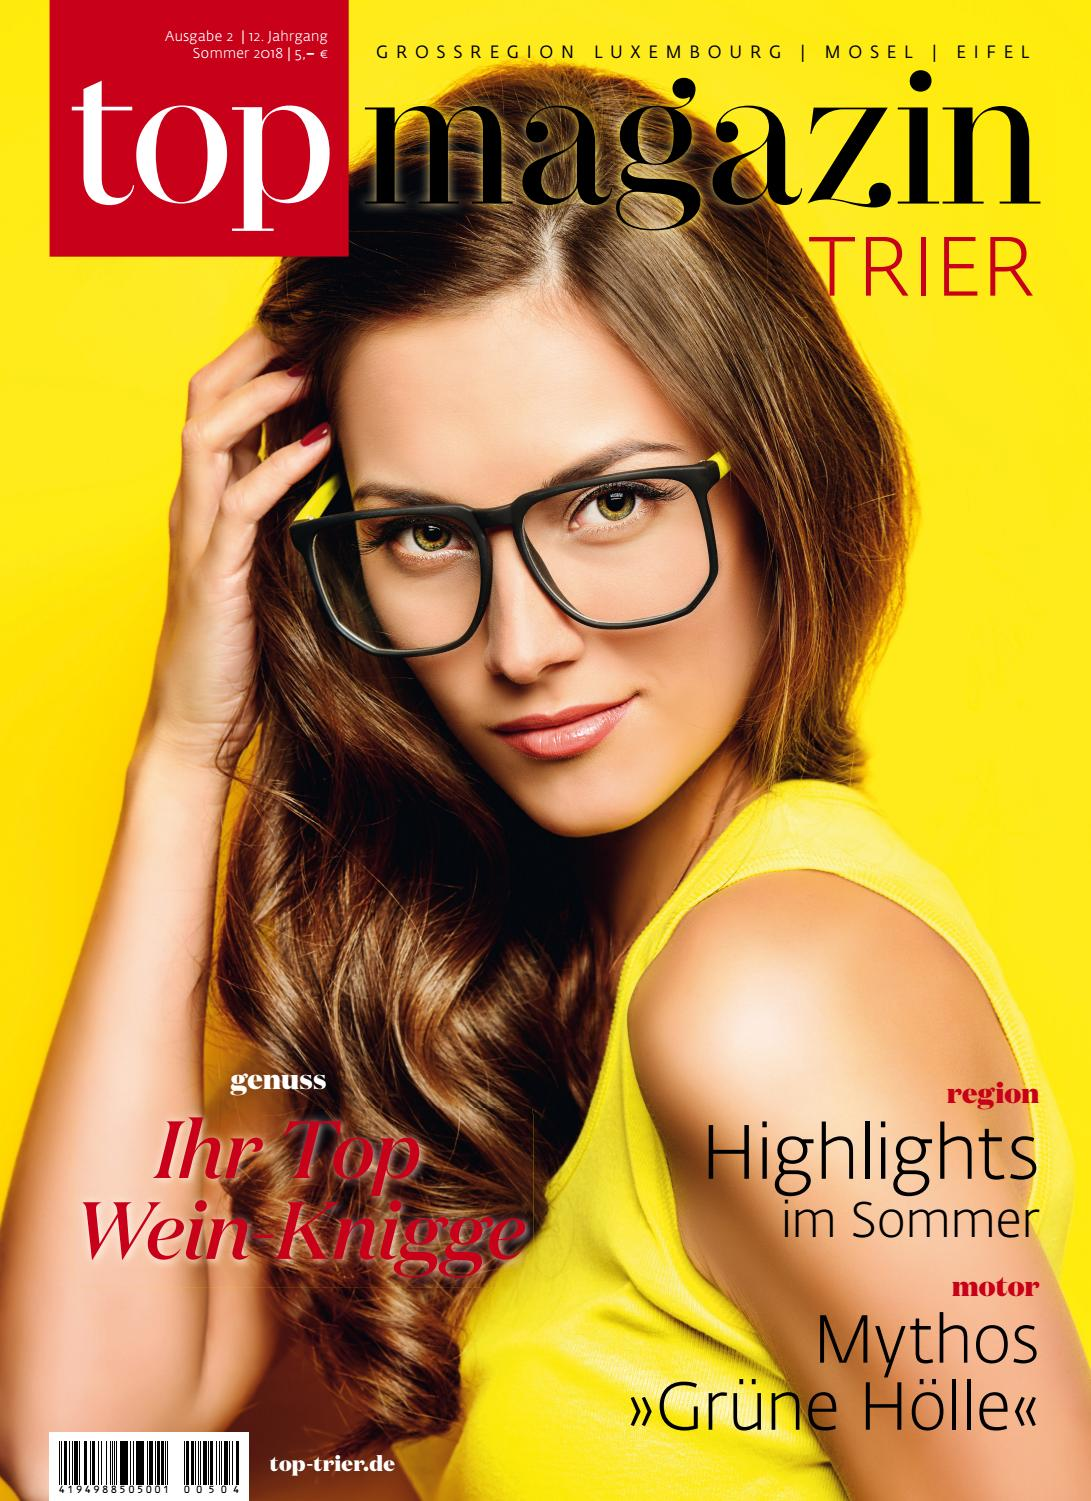 Top Magazin Sommer Trier 2018 by Top Magazin - issuu